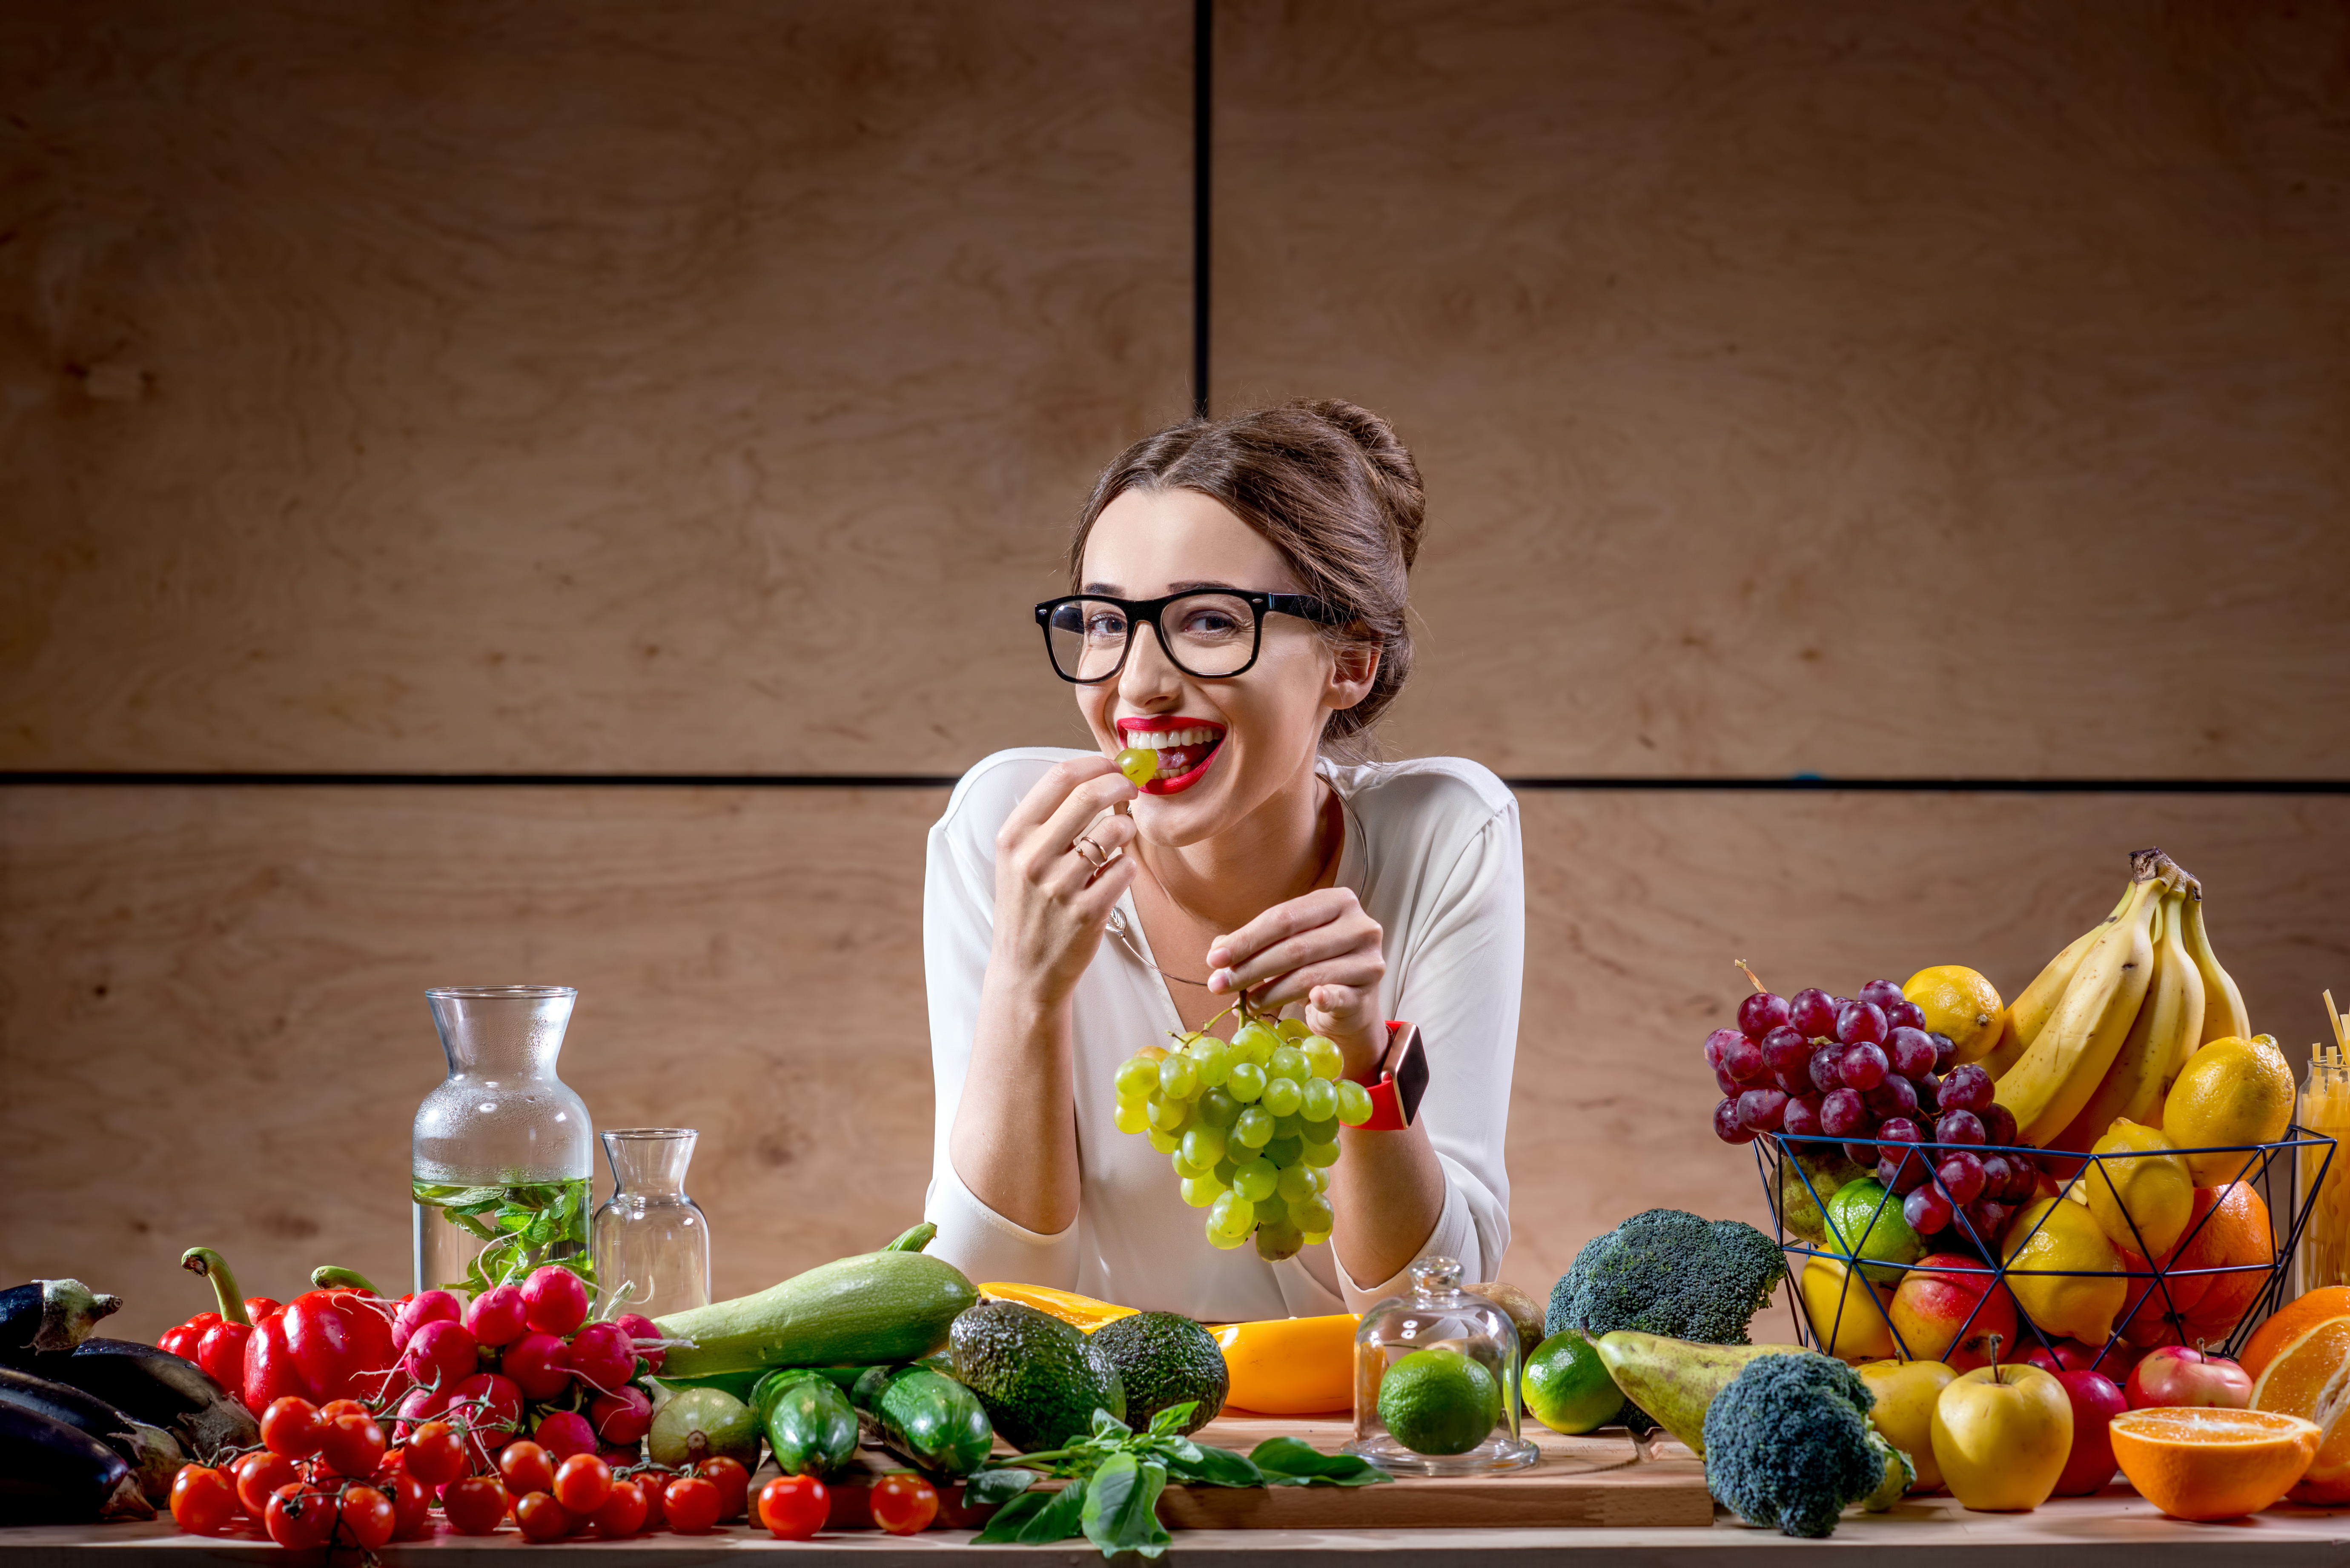 Forget Counting Calories: 5 Benefits of Eating Fresh Food